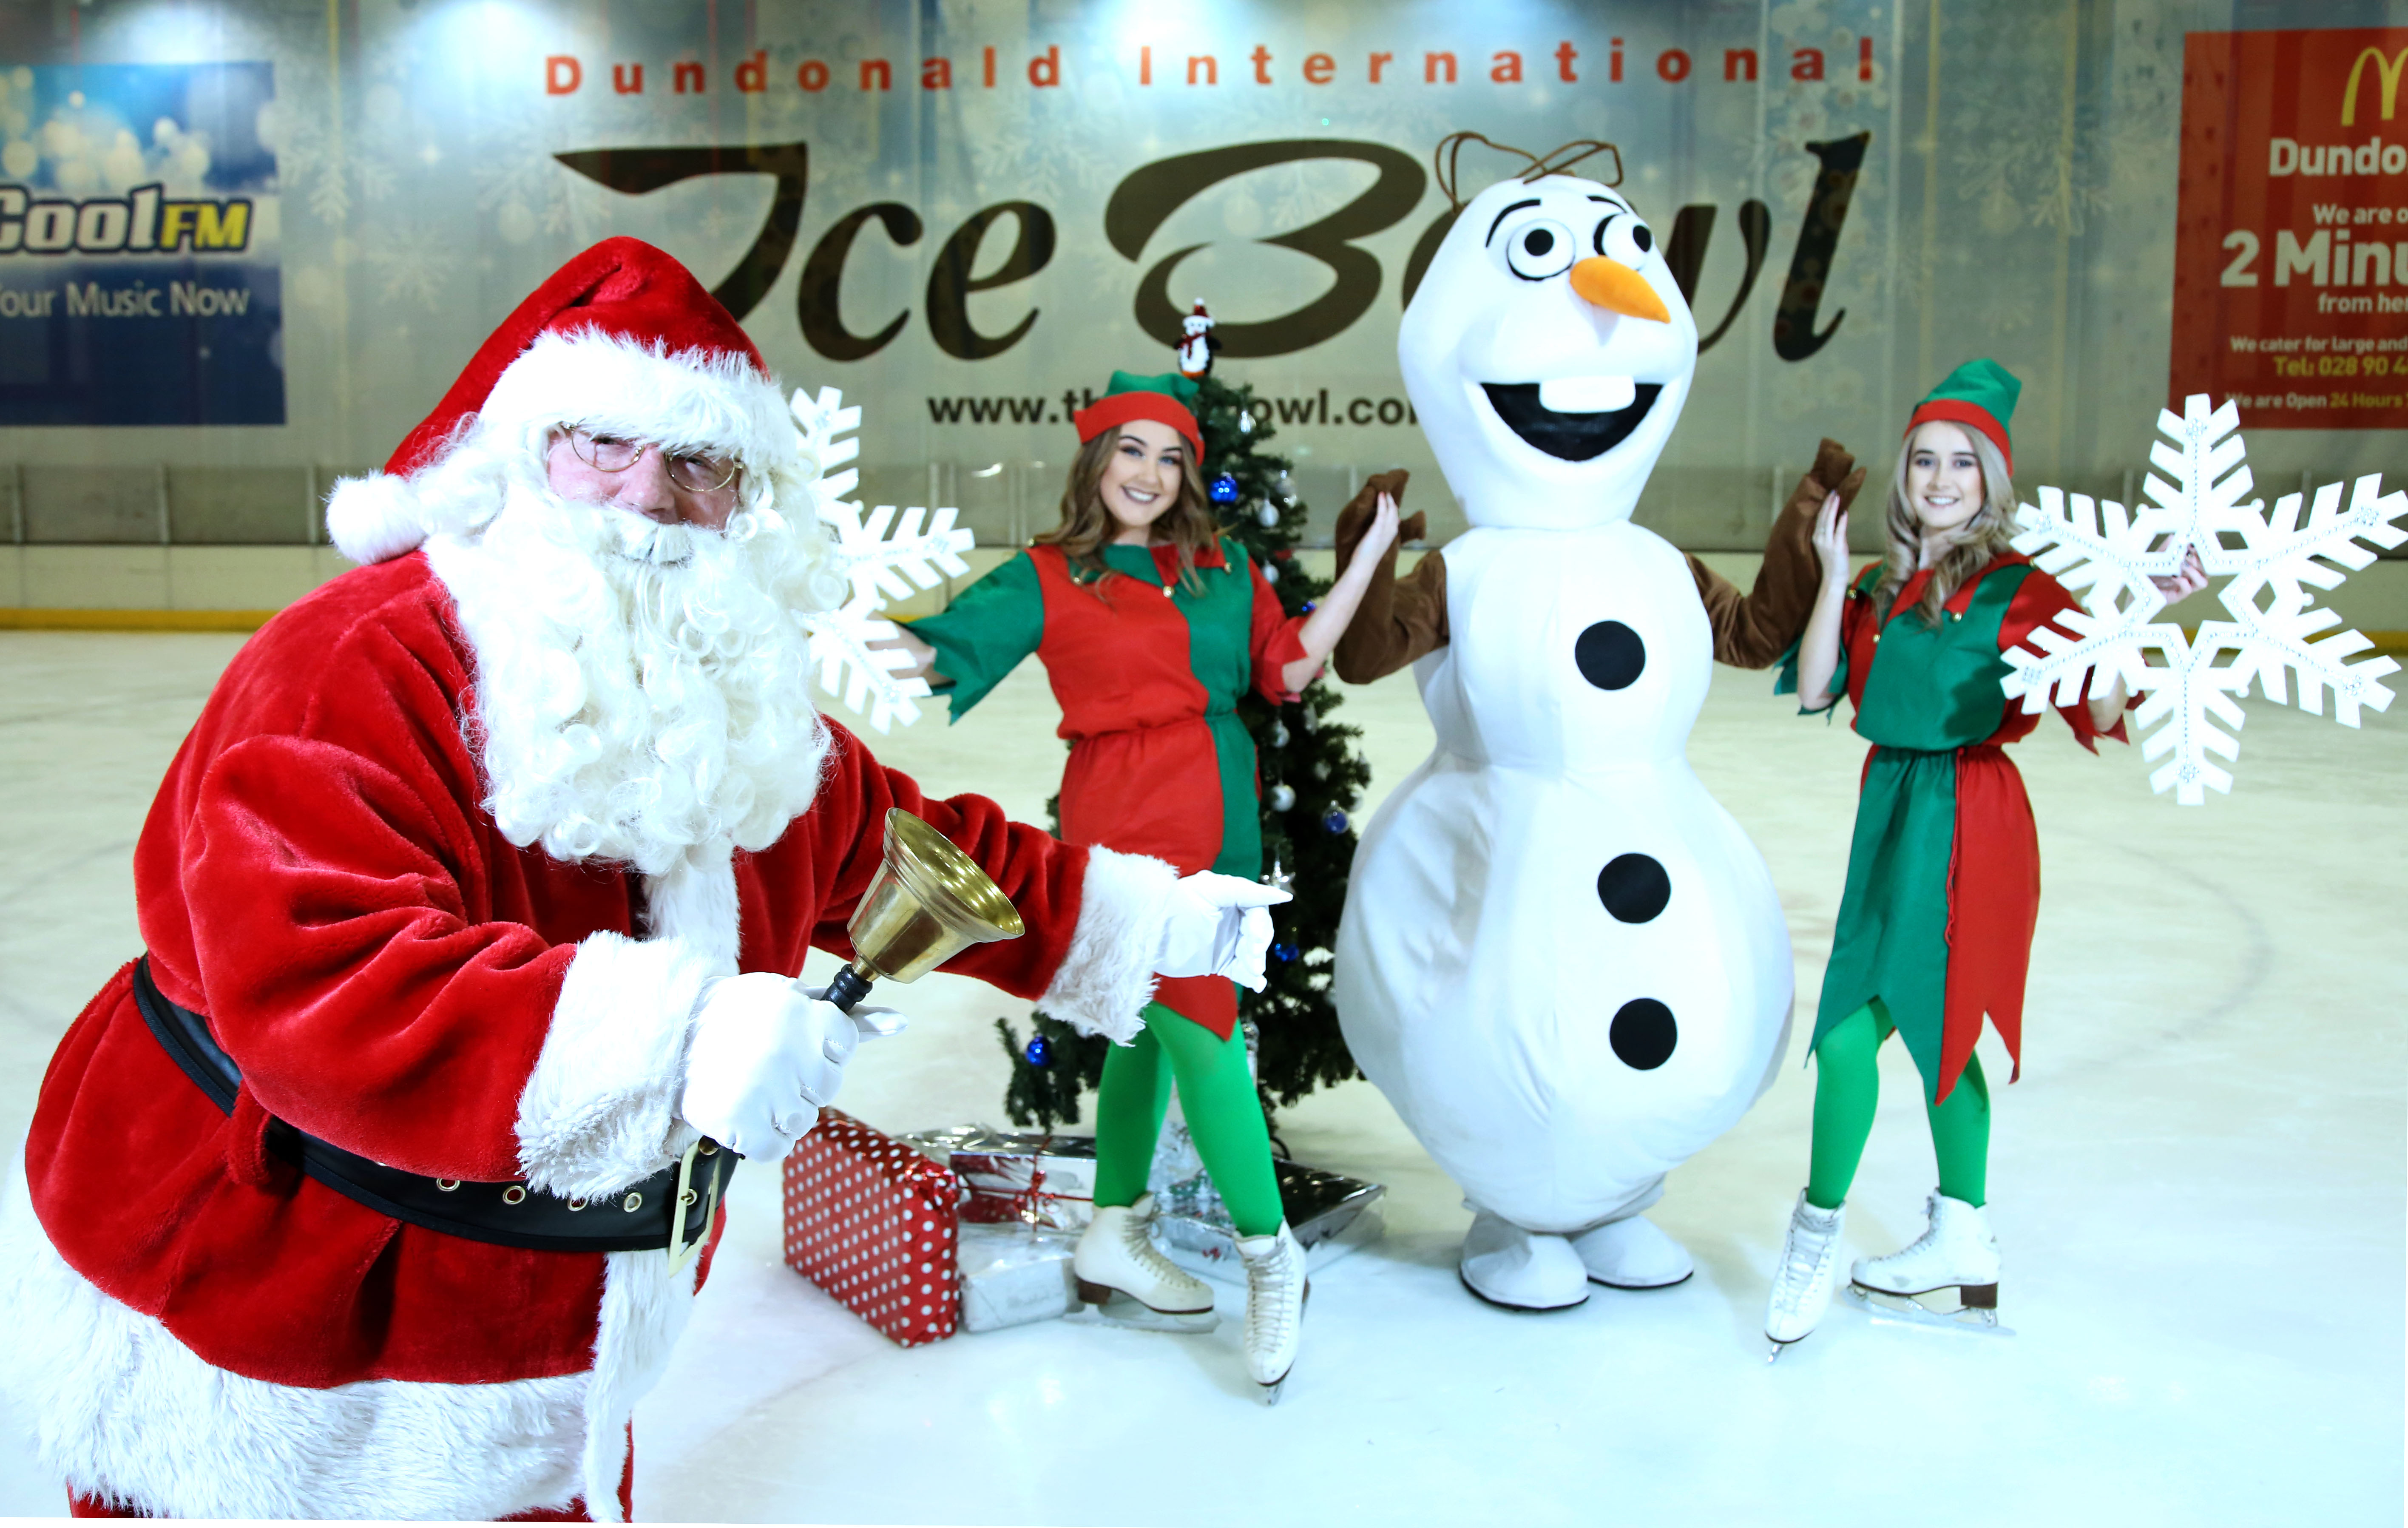 festive fun at dundonald international ice bowl christmas is - What Is Open On Christmas Eve